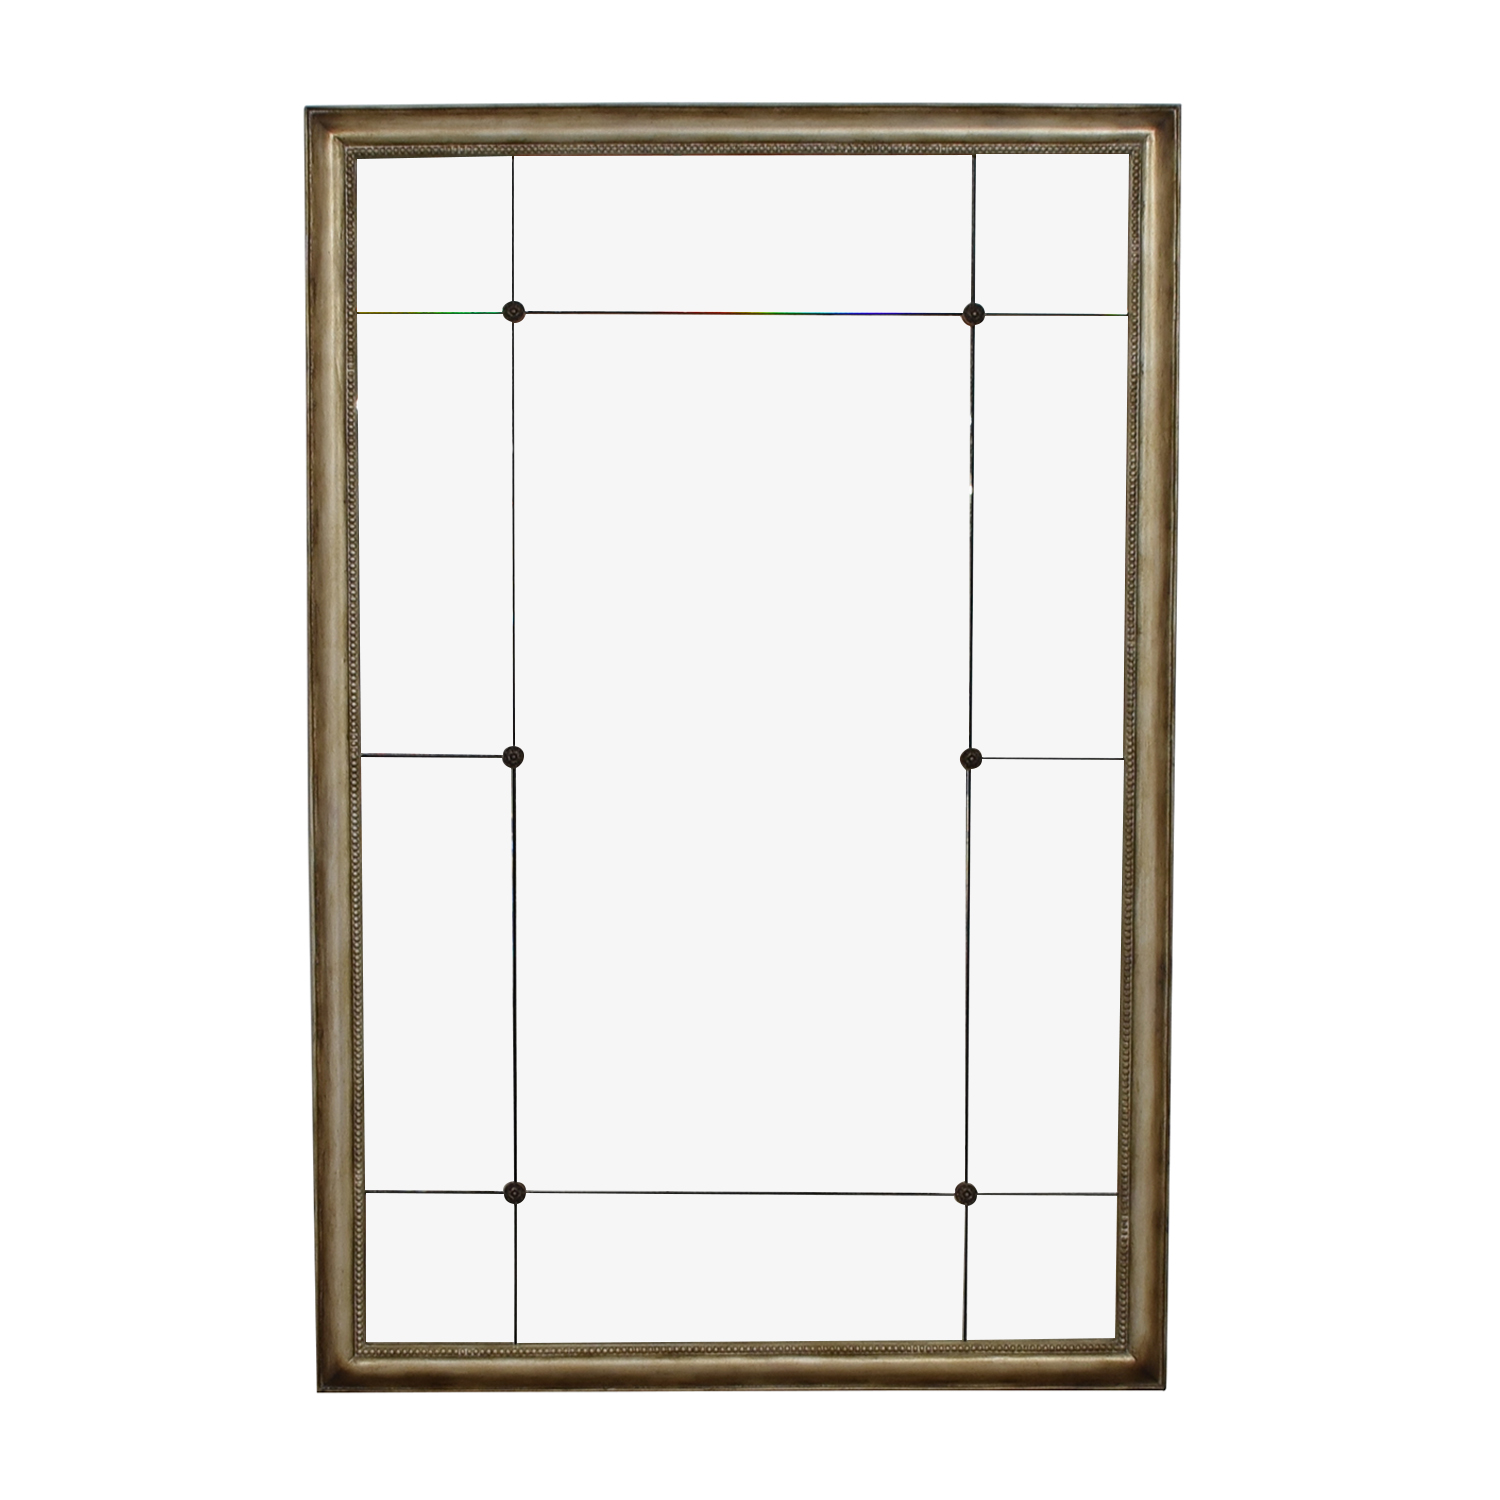 Hickory Chair Hickory Chair Bedroom Delphine Panel Mirror on sale